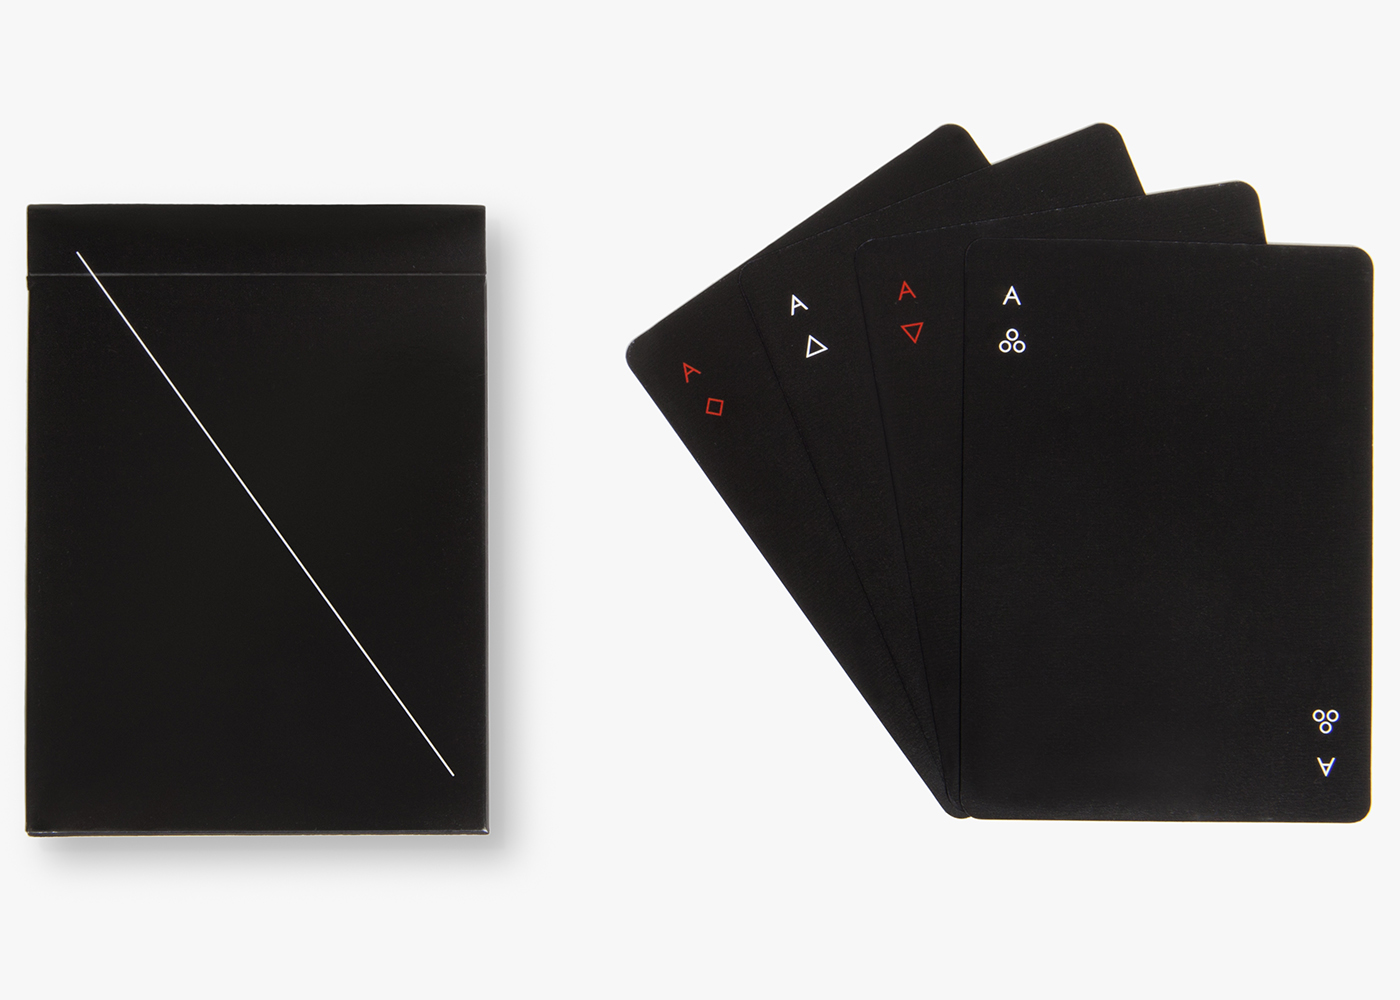 Very Minimalistic Playing Card Deck